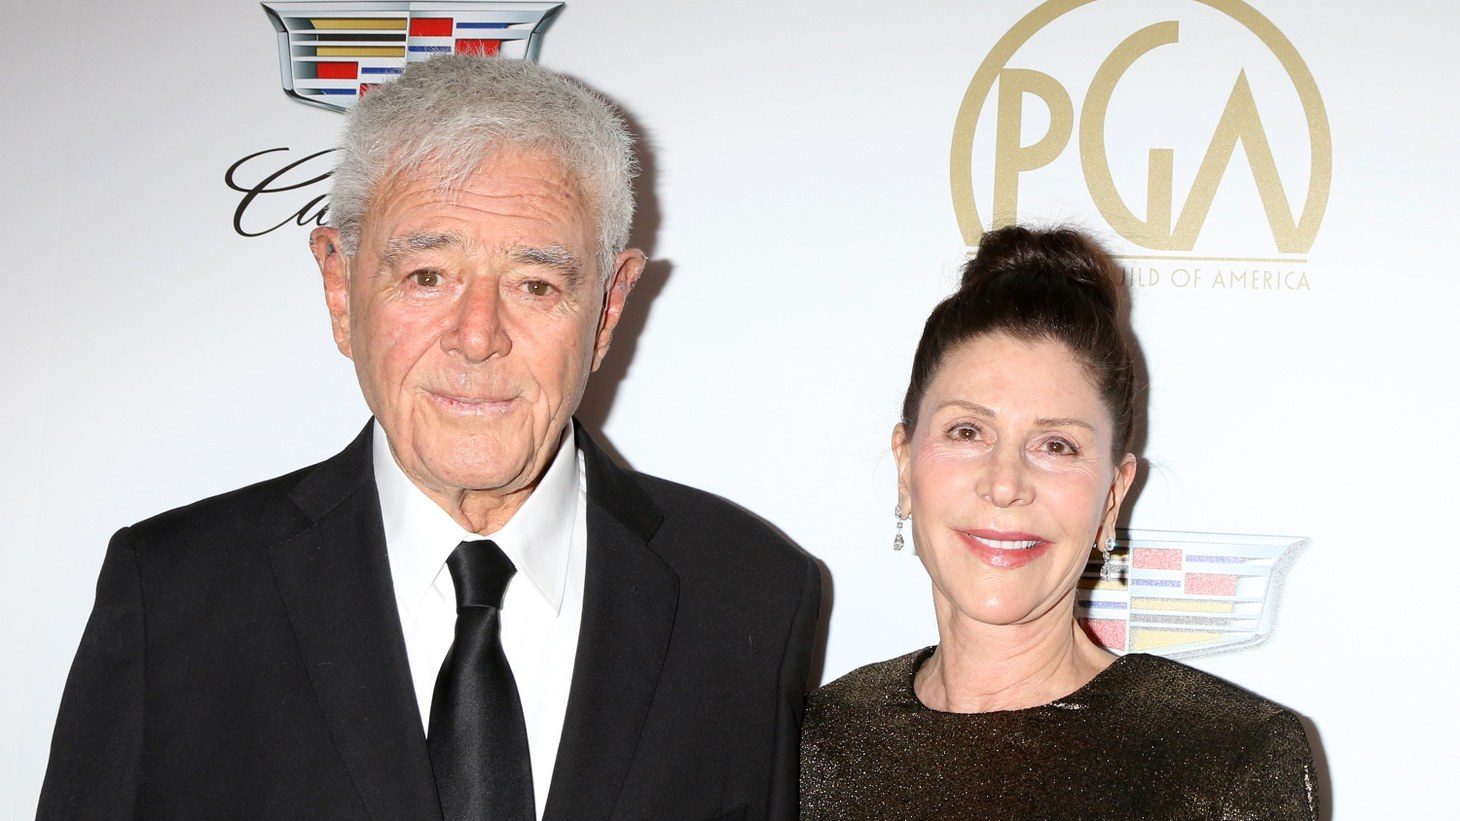 Richard Donner and Lauren Shuler Donner appear at the 2019 Producers Guild Awards at the Beverly Hilton Hotel on January 19, 2019 in Beverly Hills, CA.